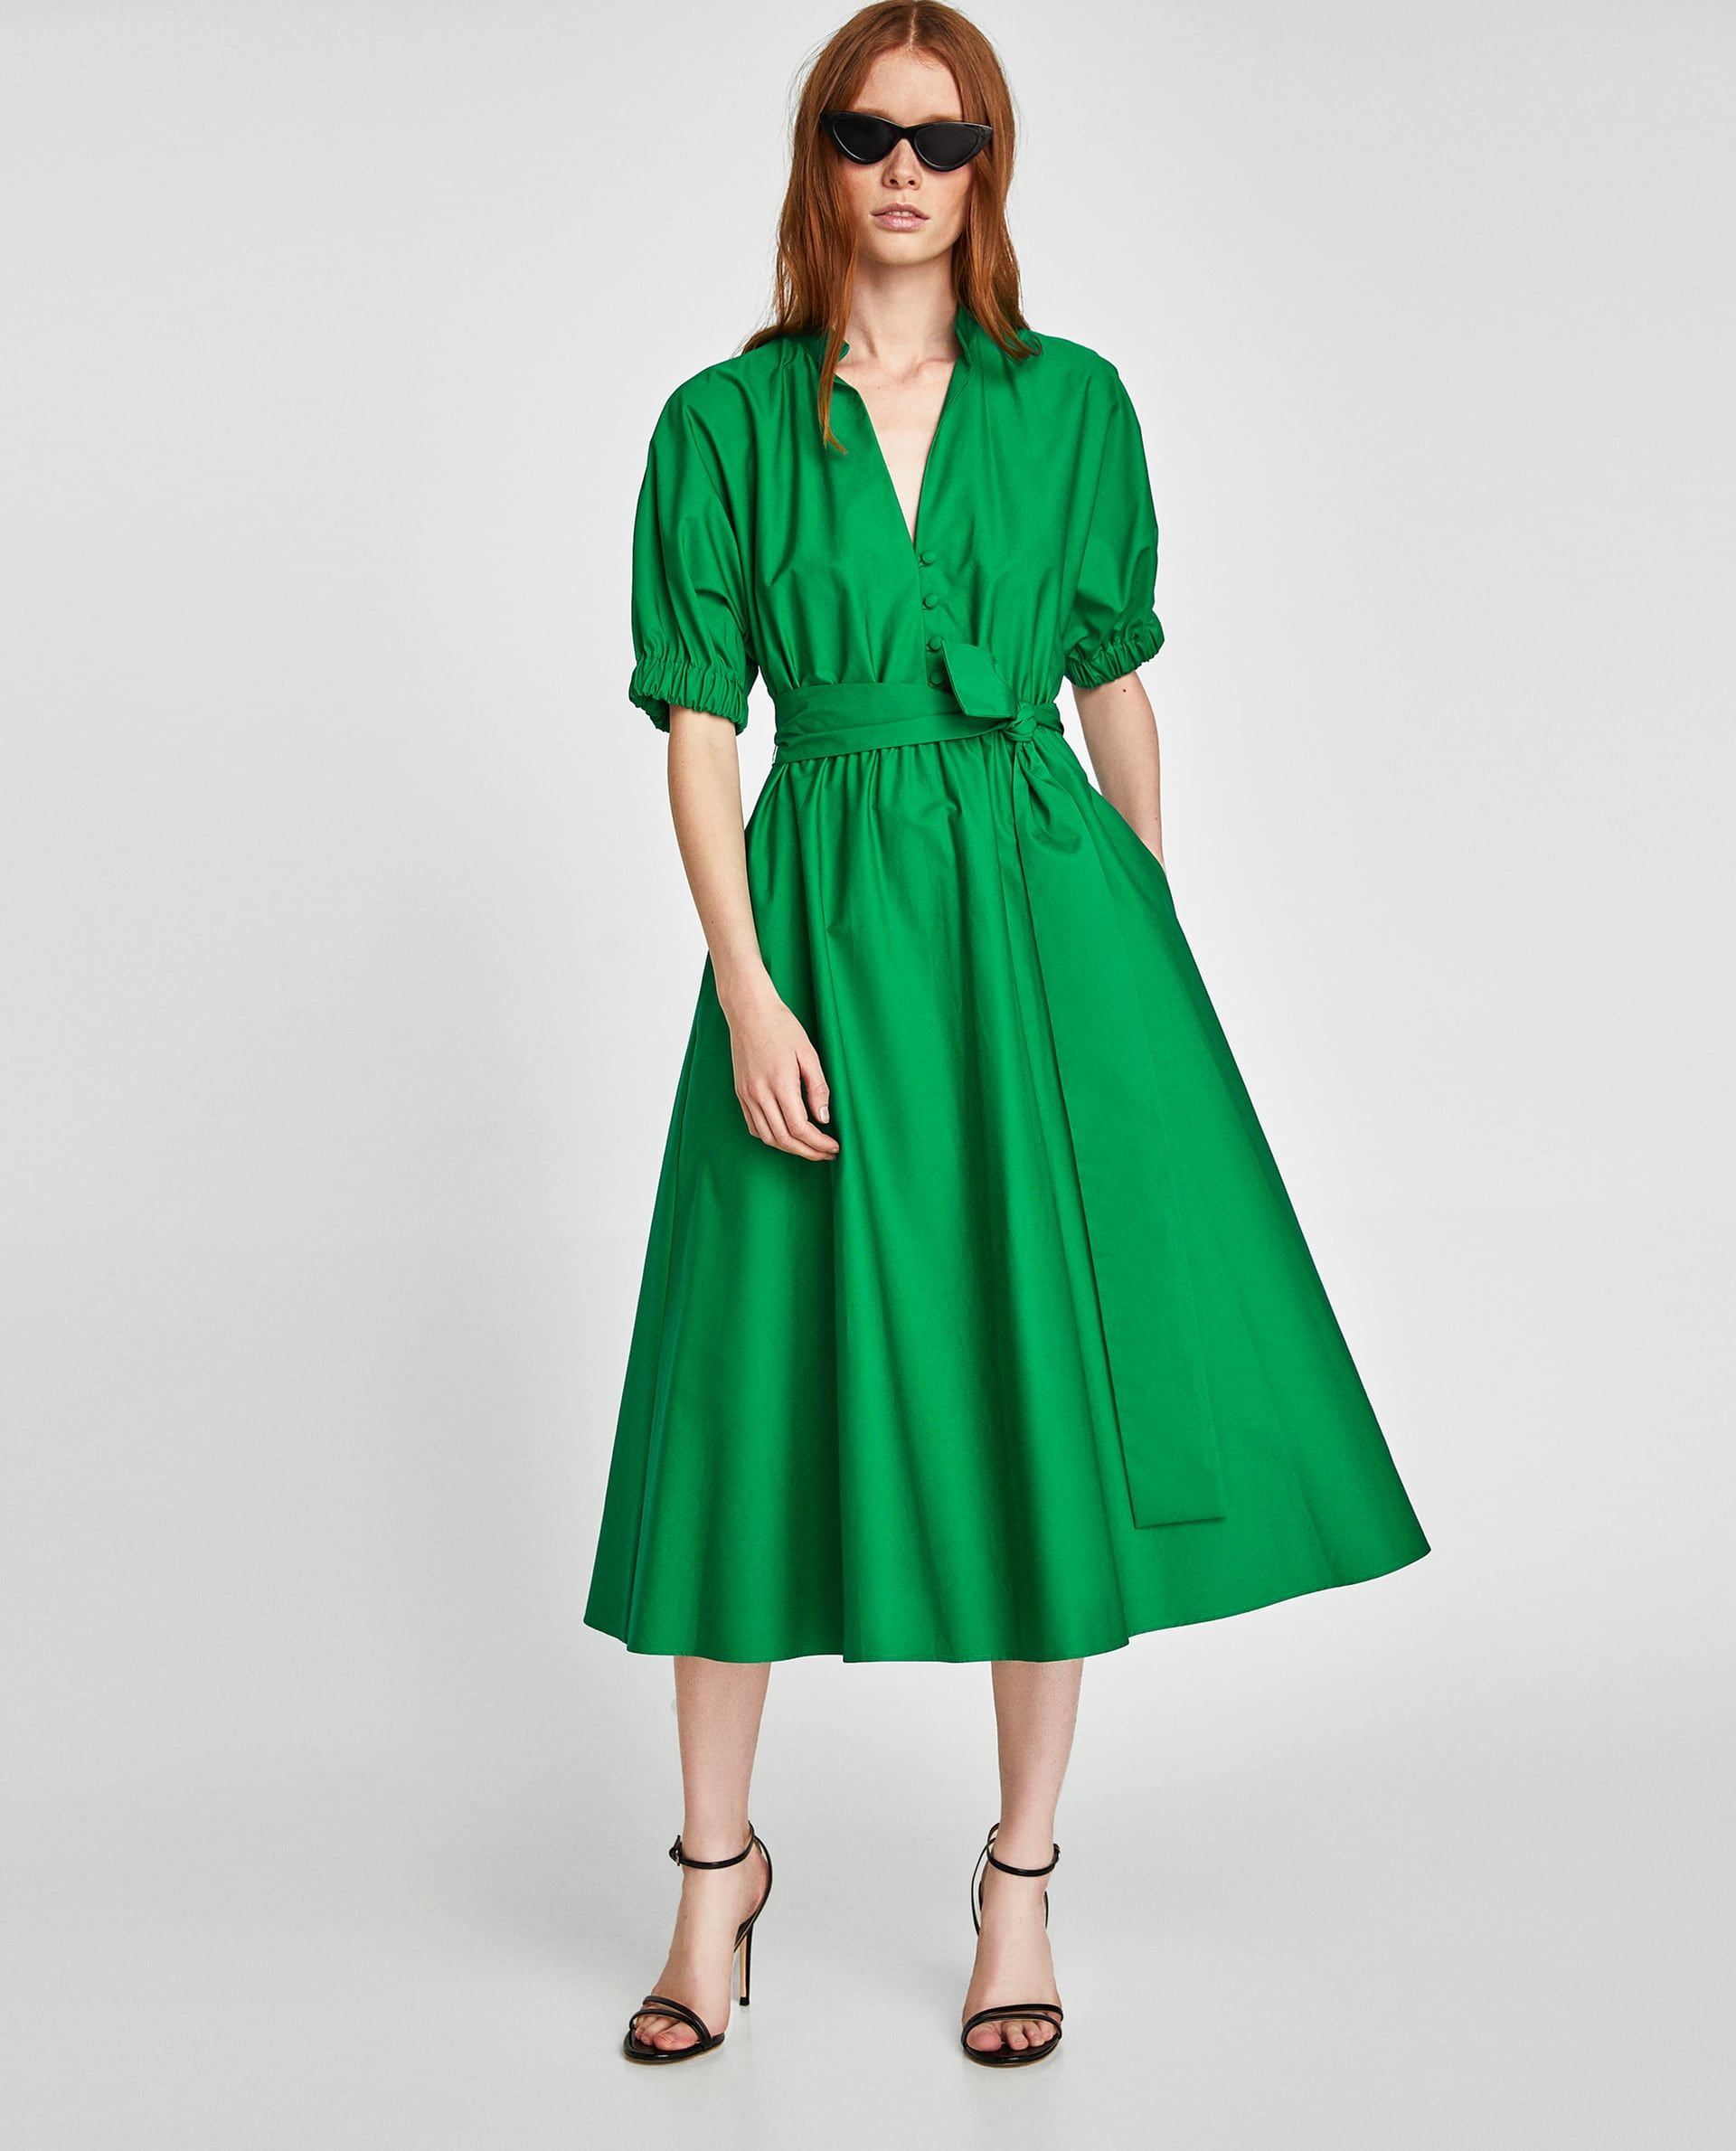 f412bfb72e Zara Green Flowing Midi Skirt – DACC